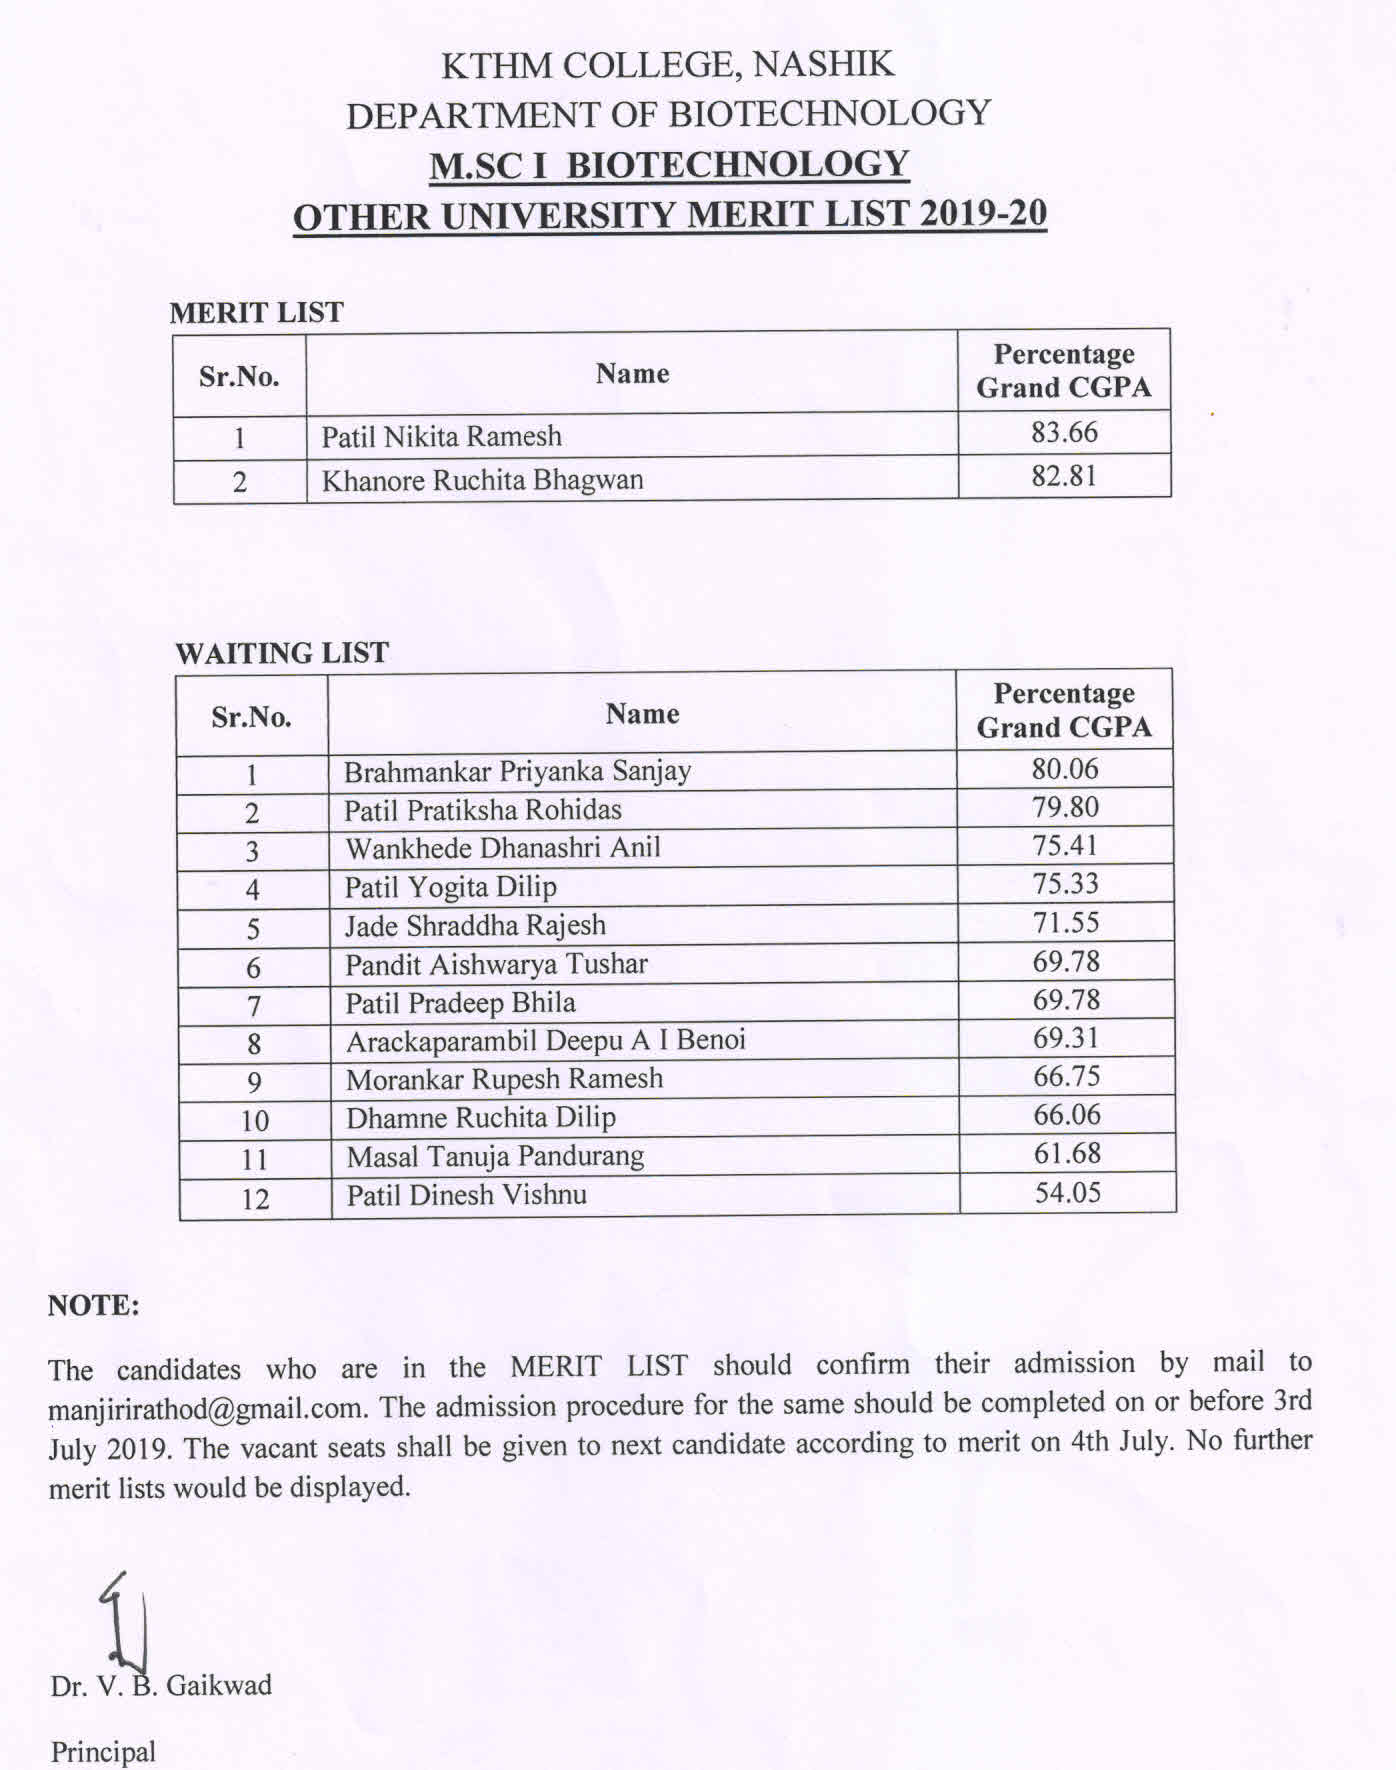 MSc-I Biotech Other University Merit List 2019-20